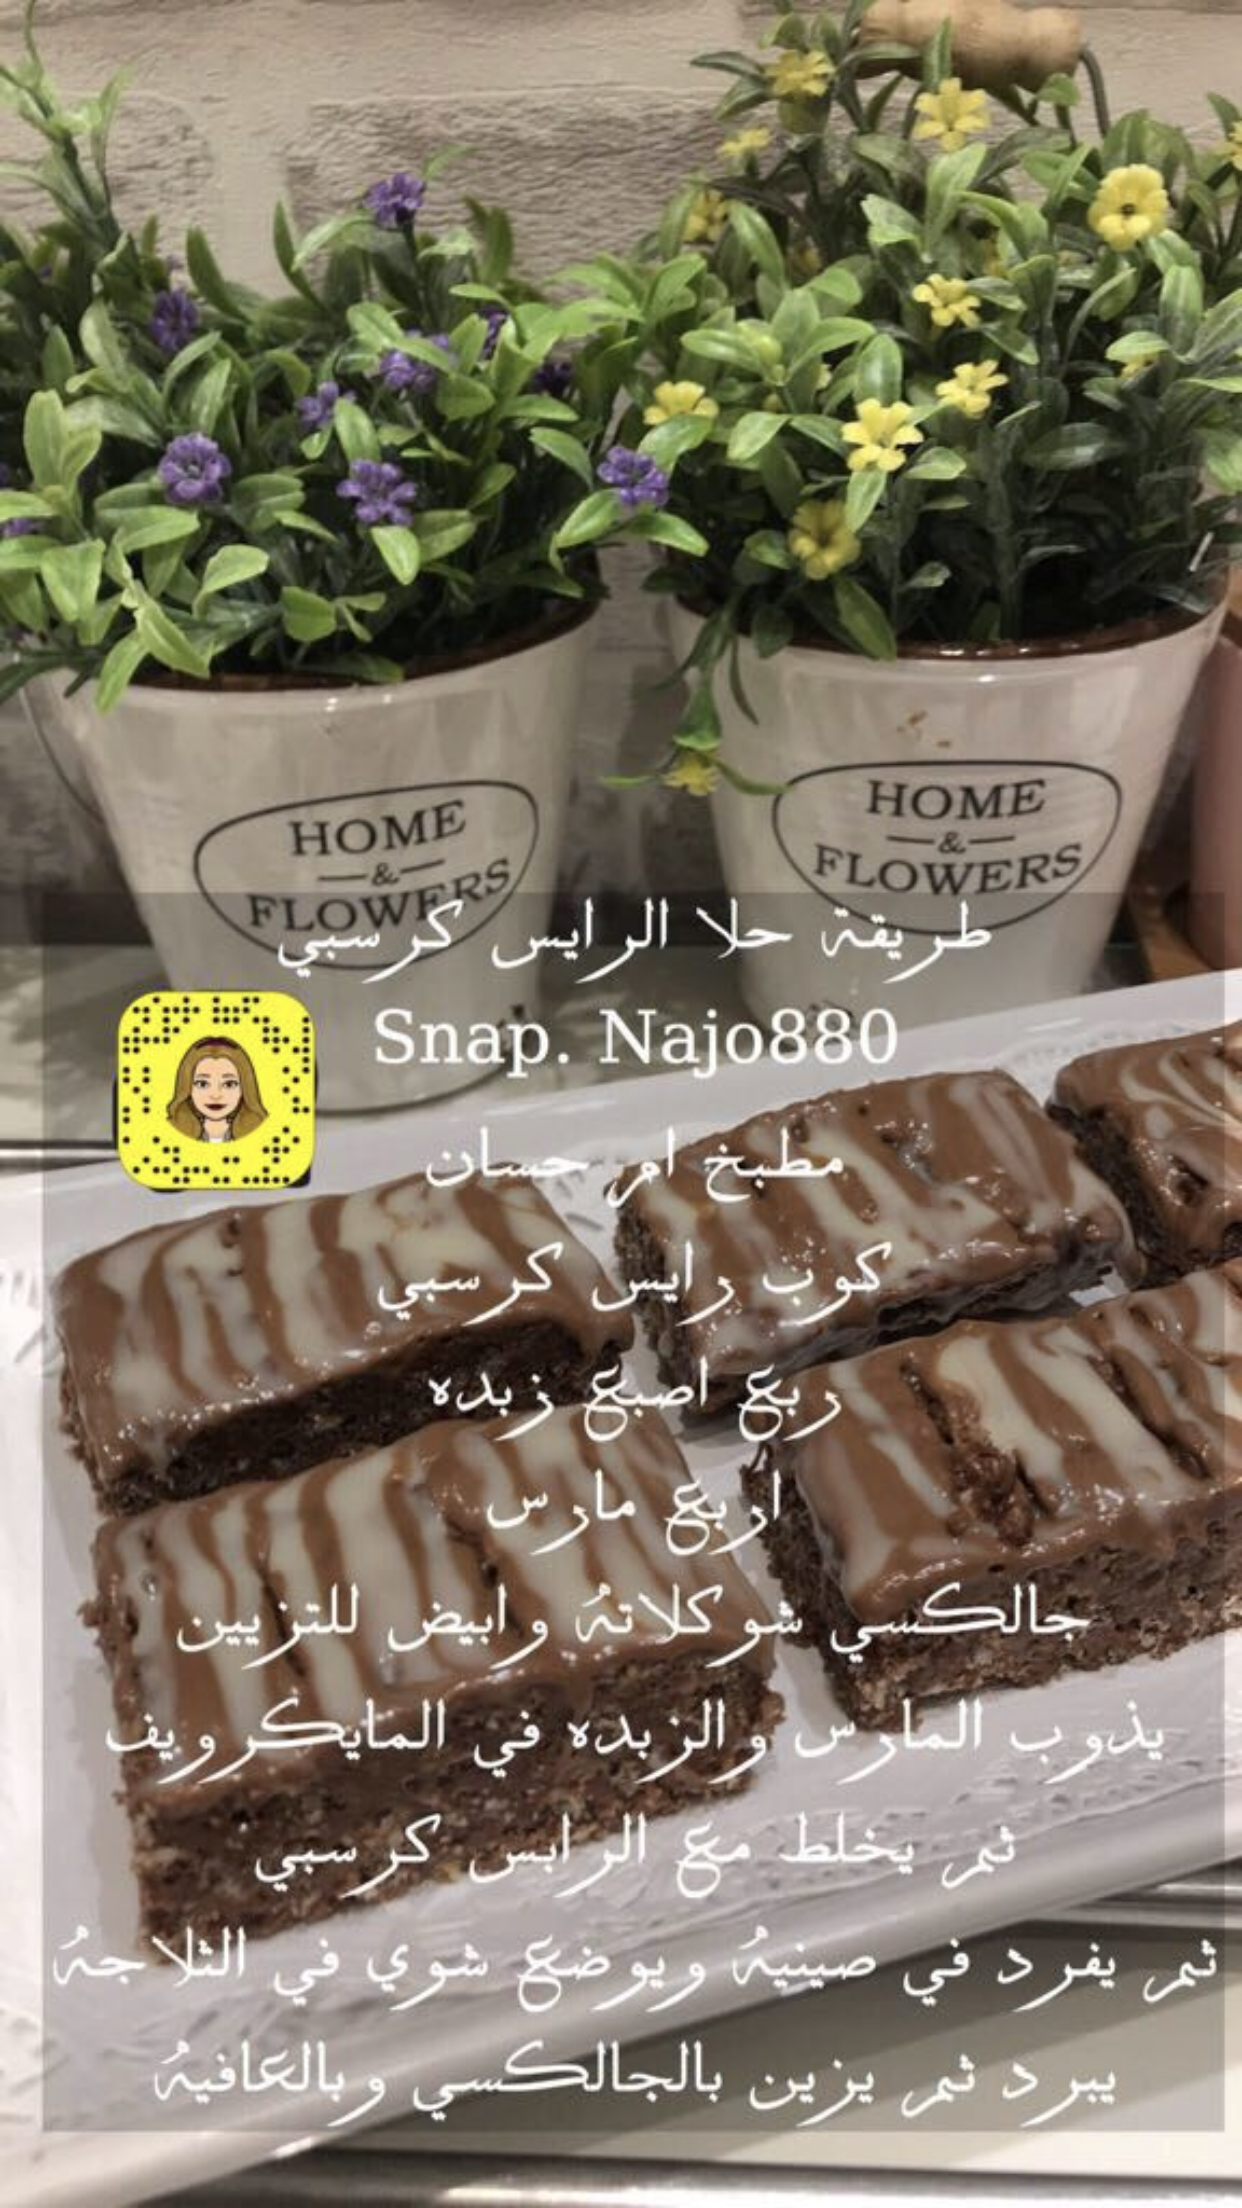 Pin By Najo880 On مطبخ ام حسان Flowers